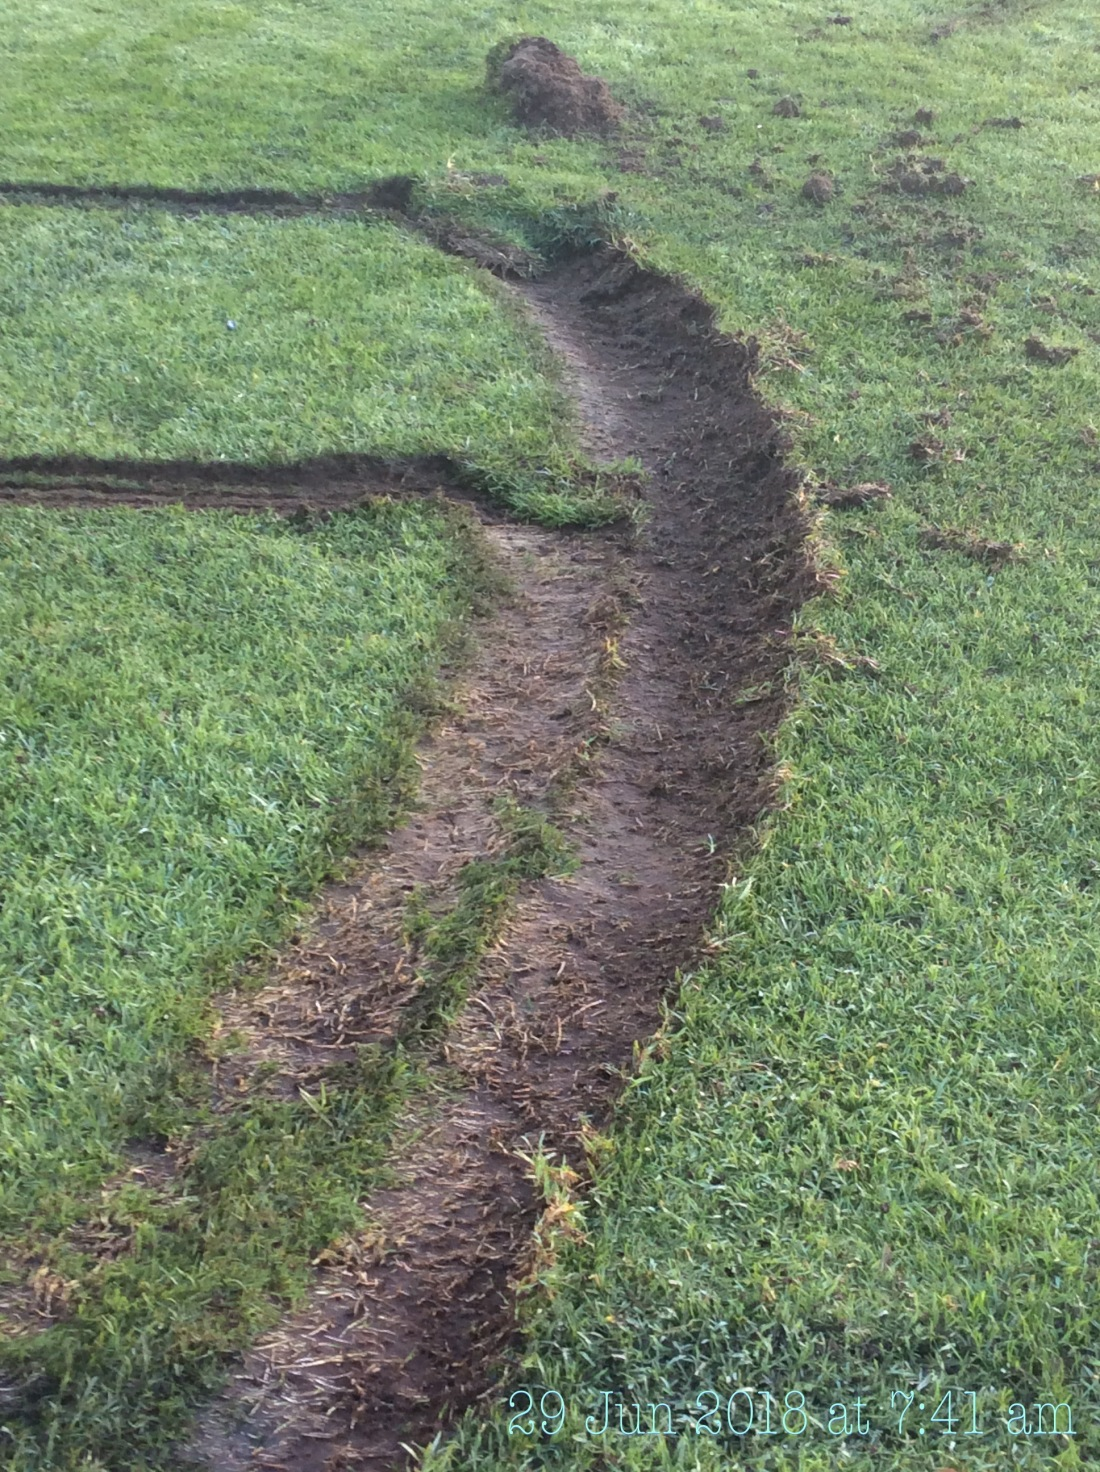 Damage to footy oval